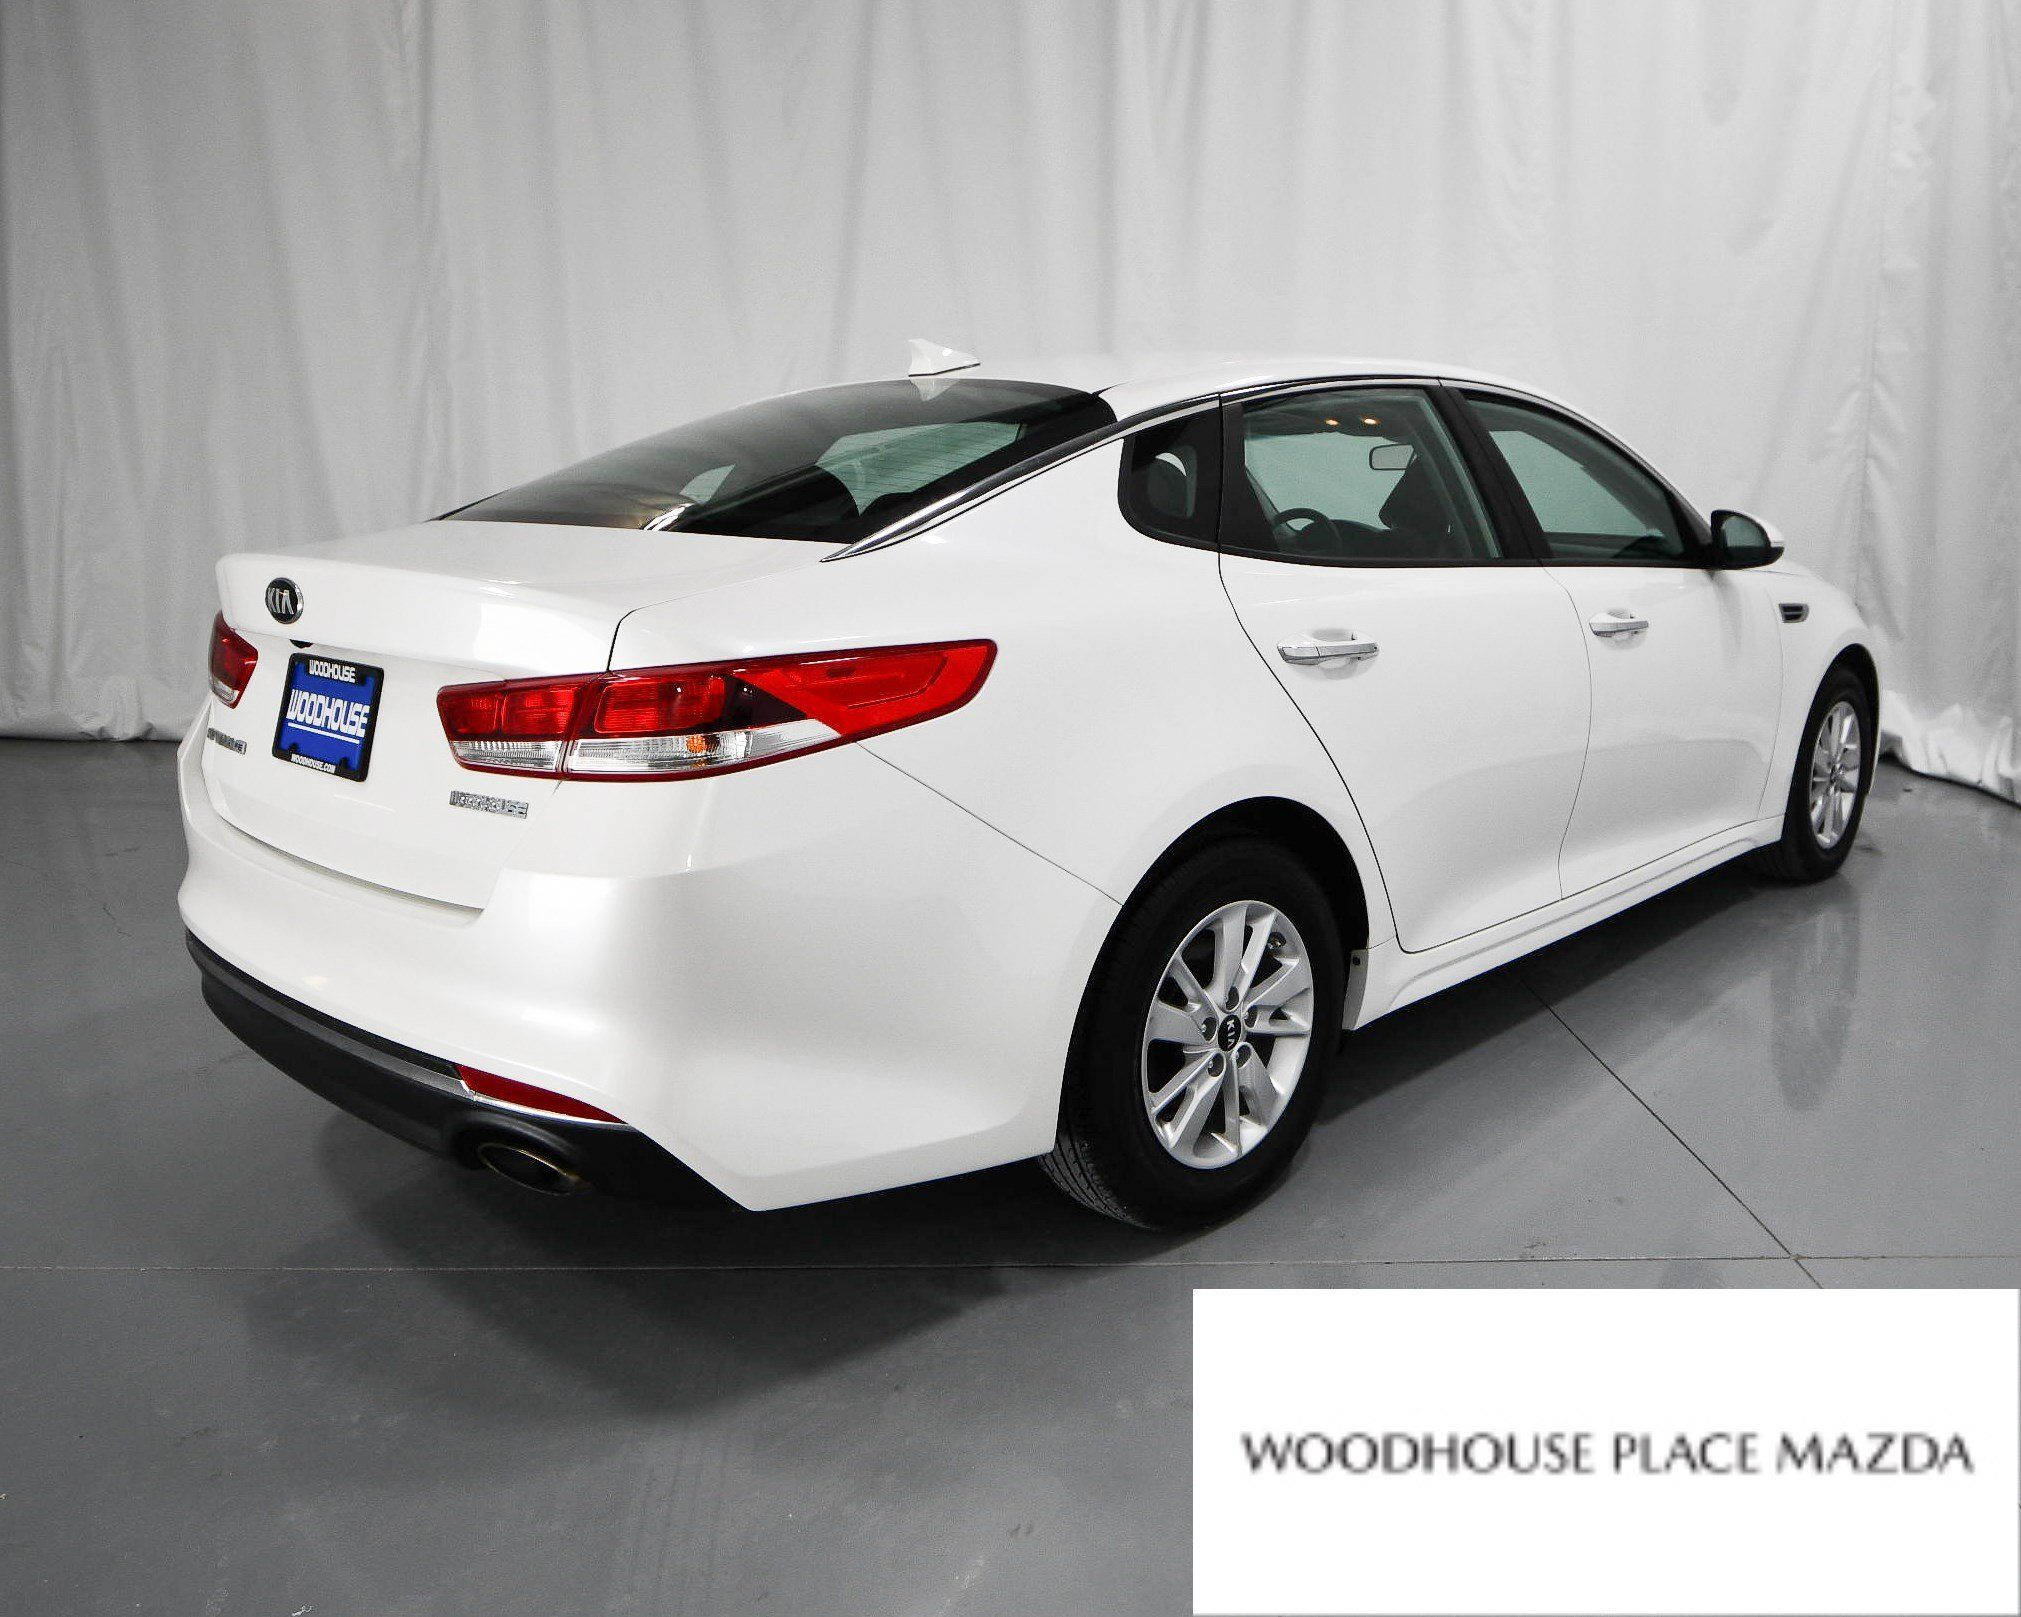 Details Here Https Dantuckerautos Com Fresh Kia Optima Ex Gdi 2013 In 2020 Kia Optima Kia 2016 Kia Optima Lx